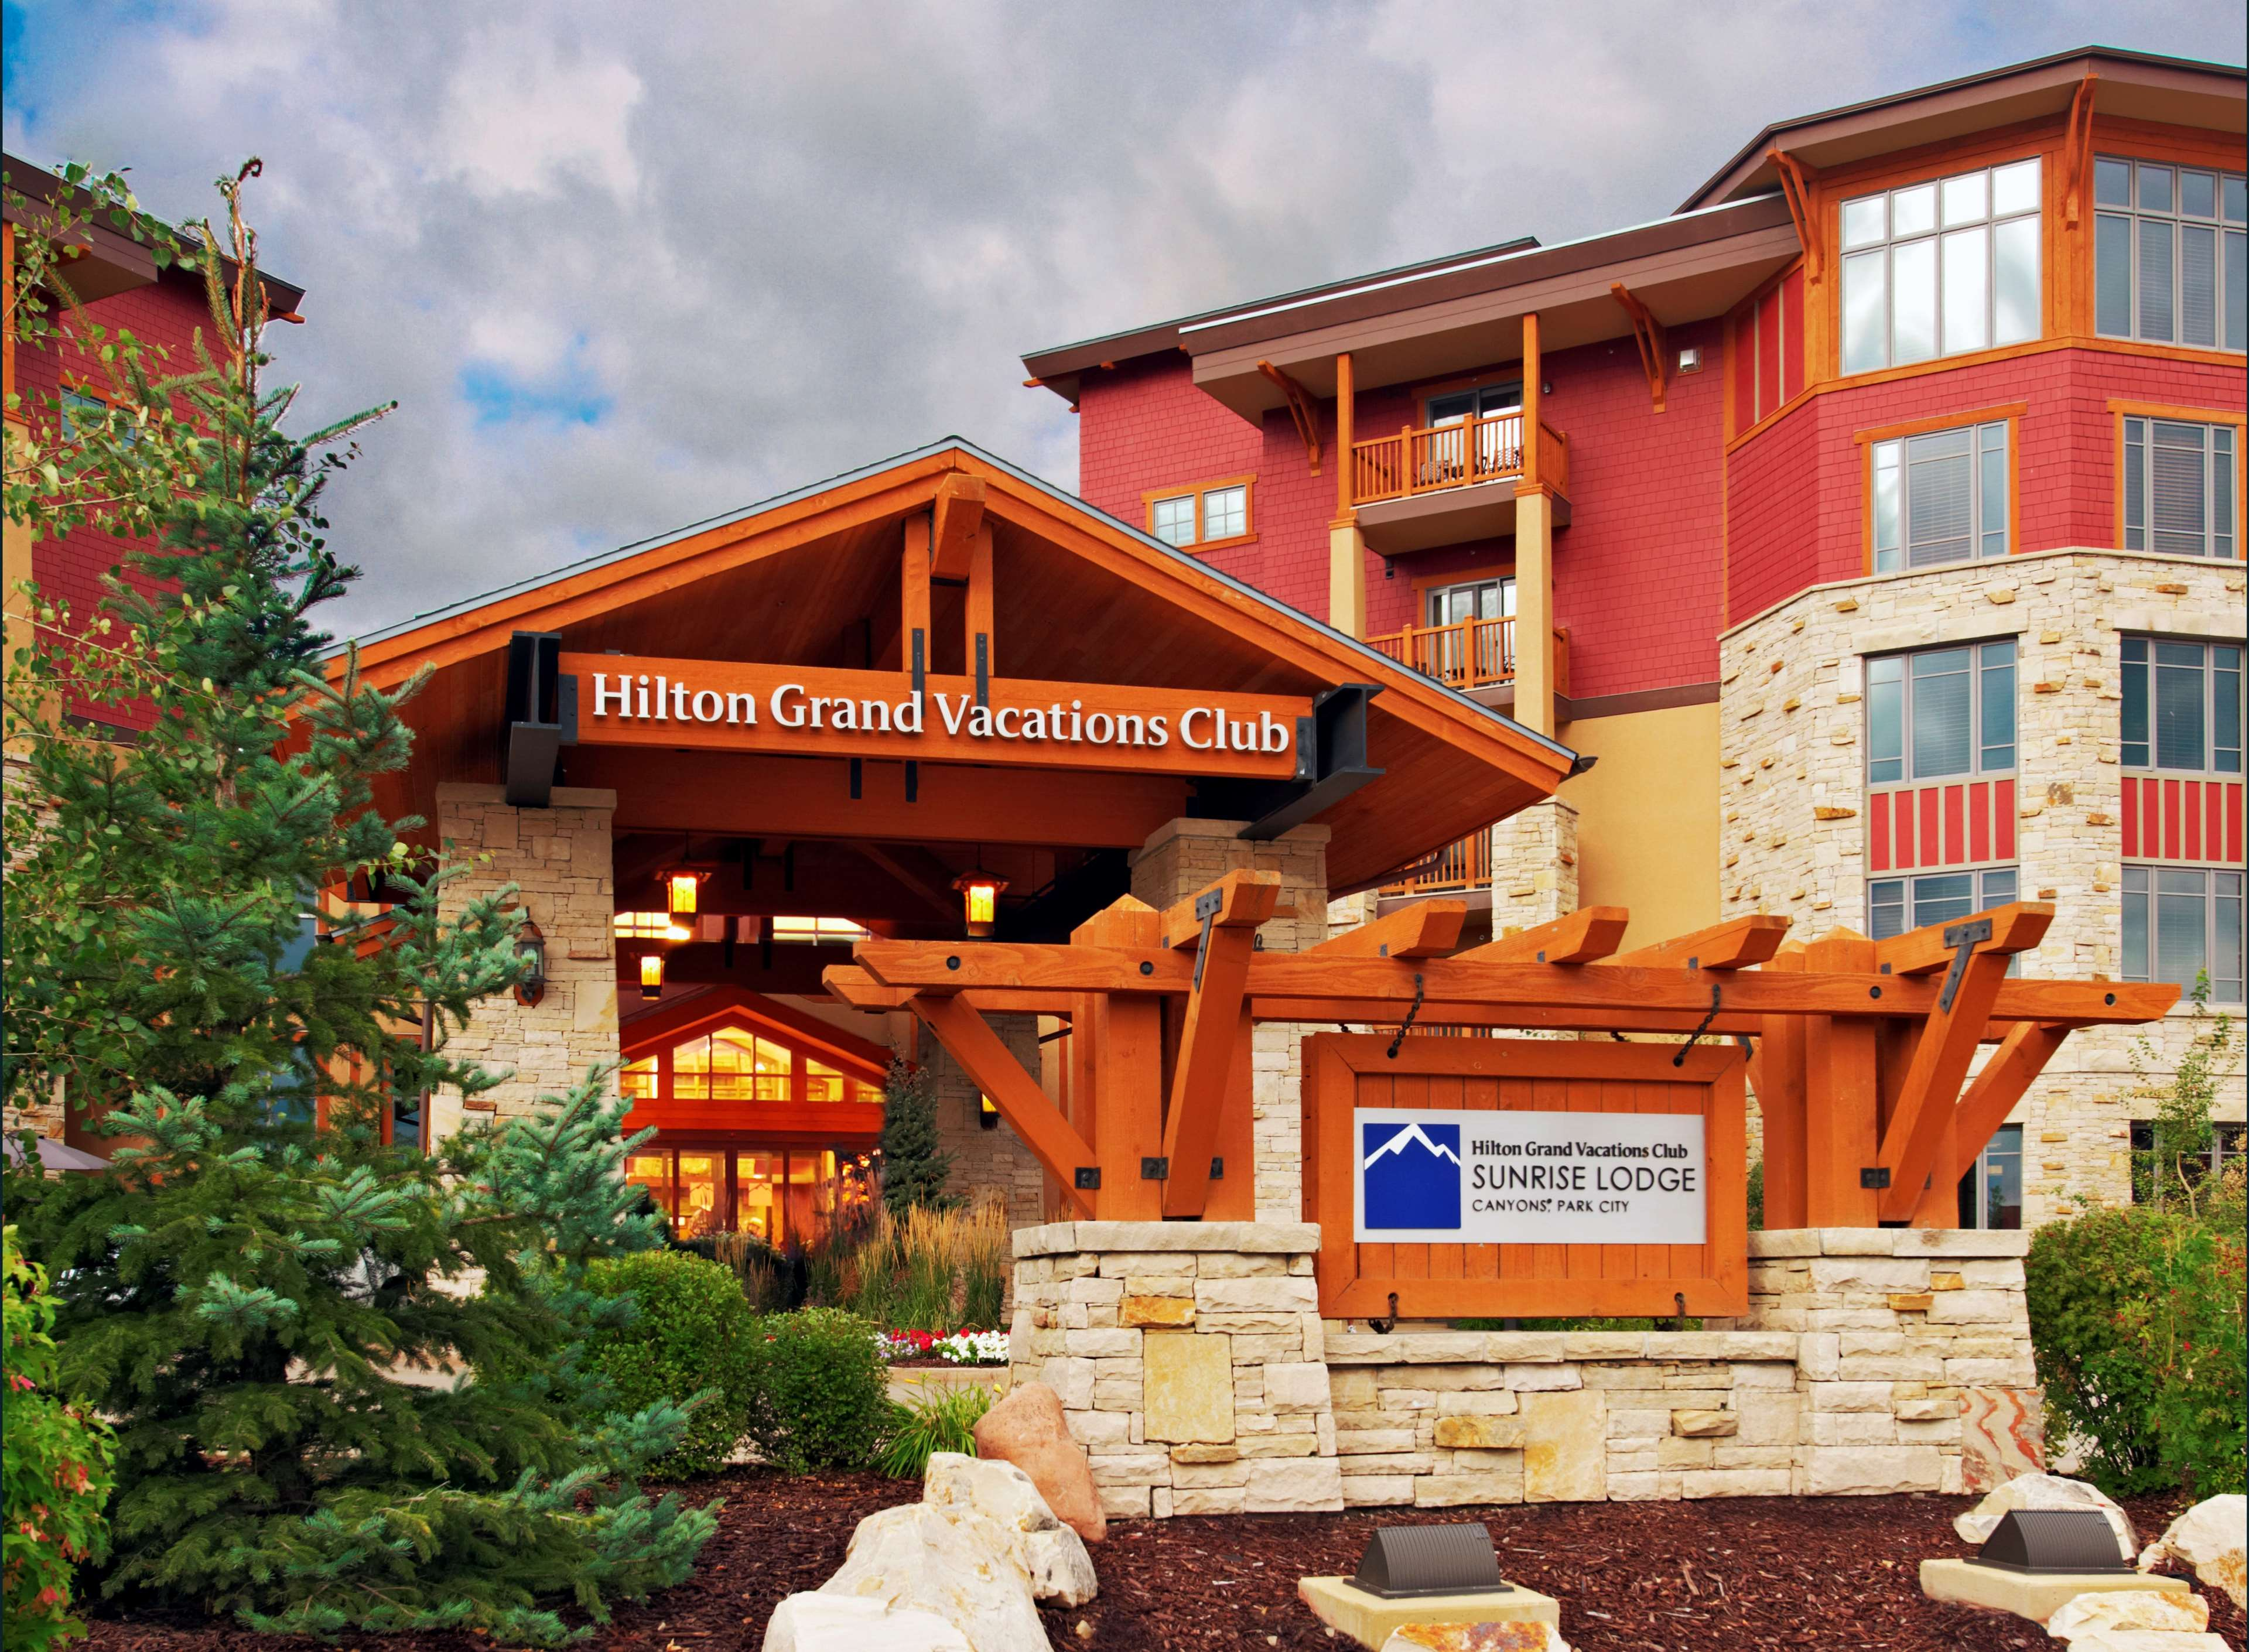 Sunrise Lodge by Hilton Grand Vacations image 3